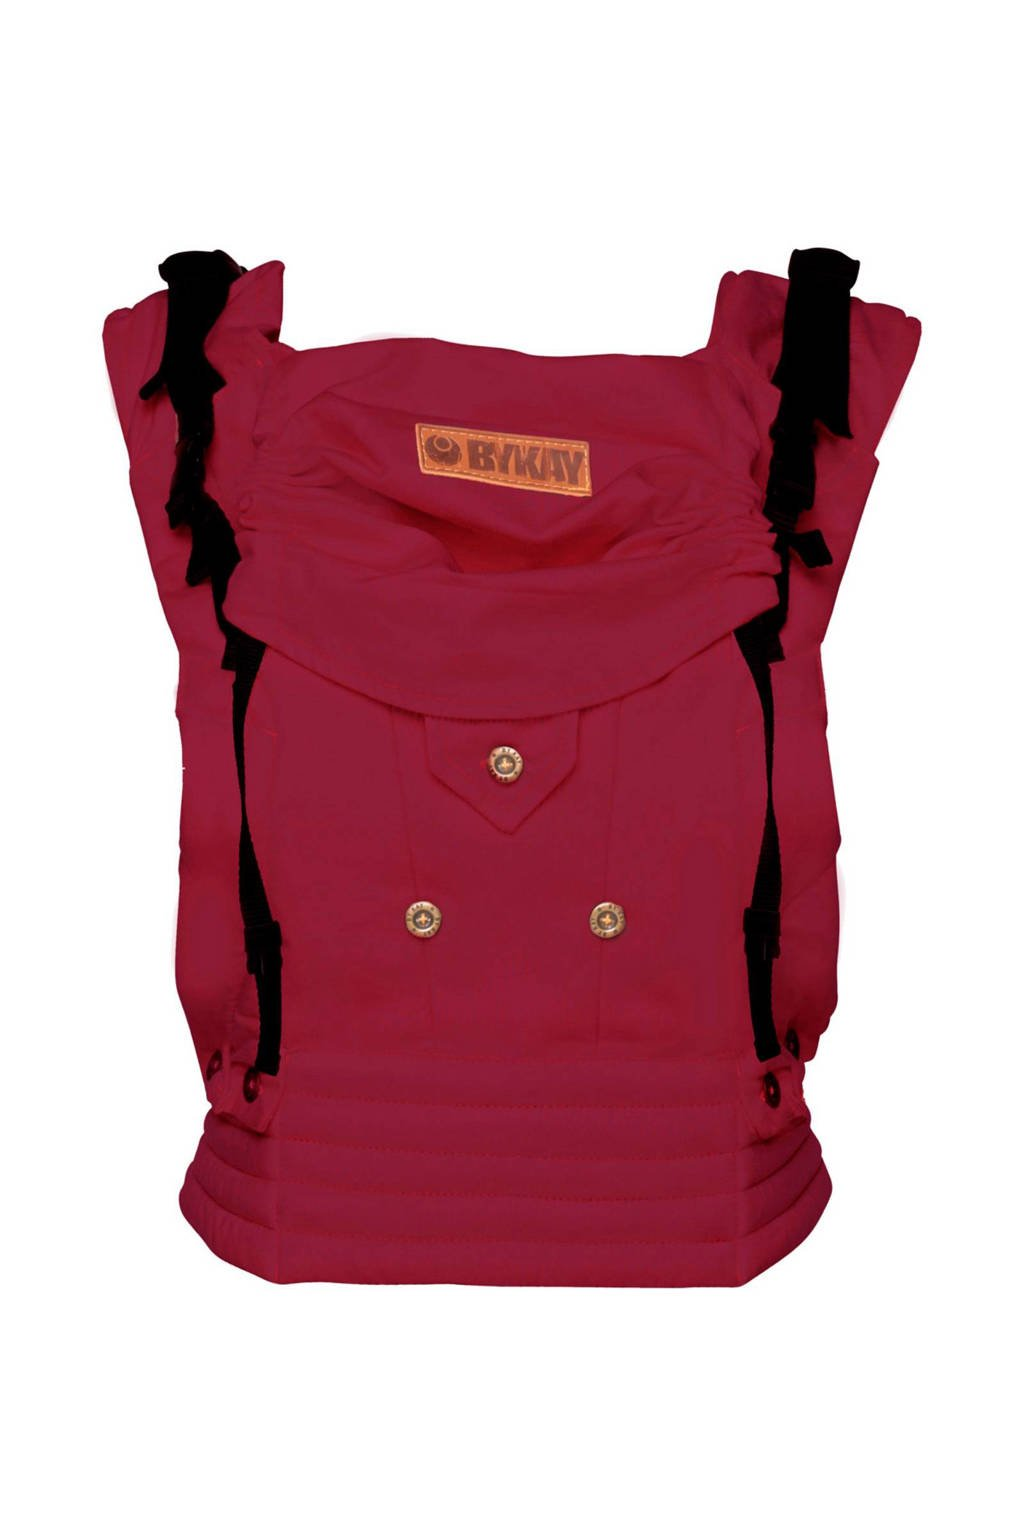 ByKay draagzak 4 Way Click Carrier 50310 rood, Berry Red